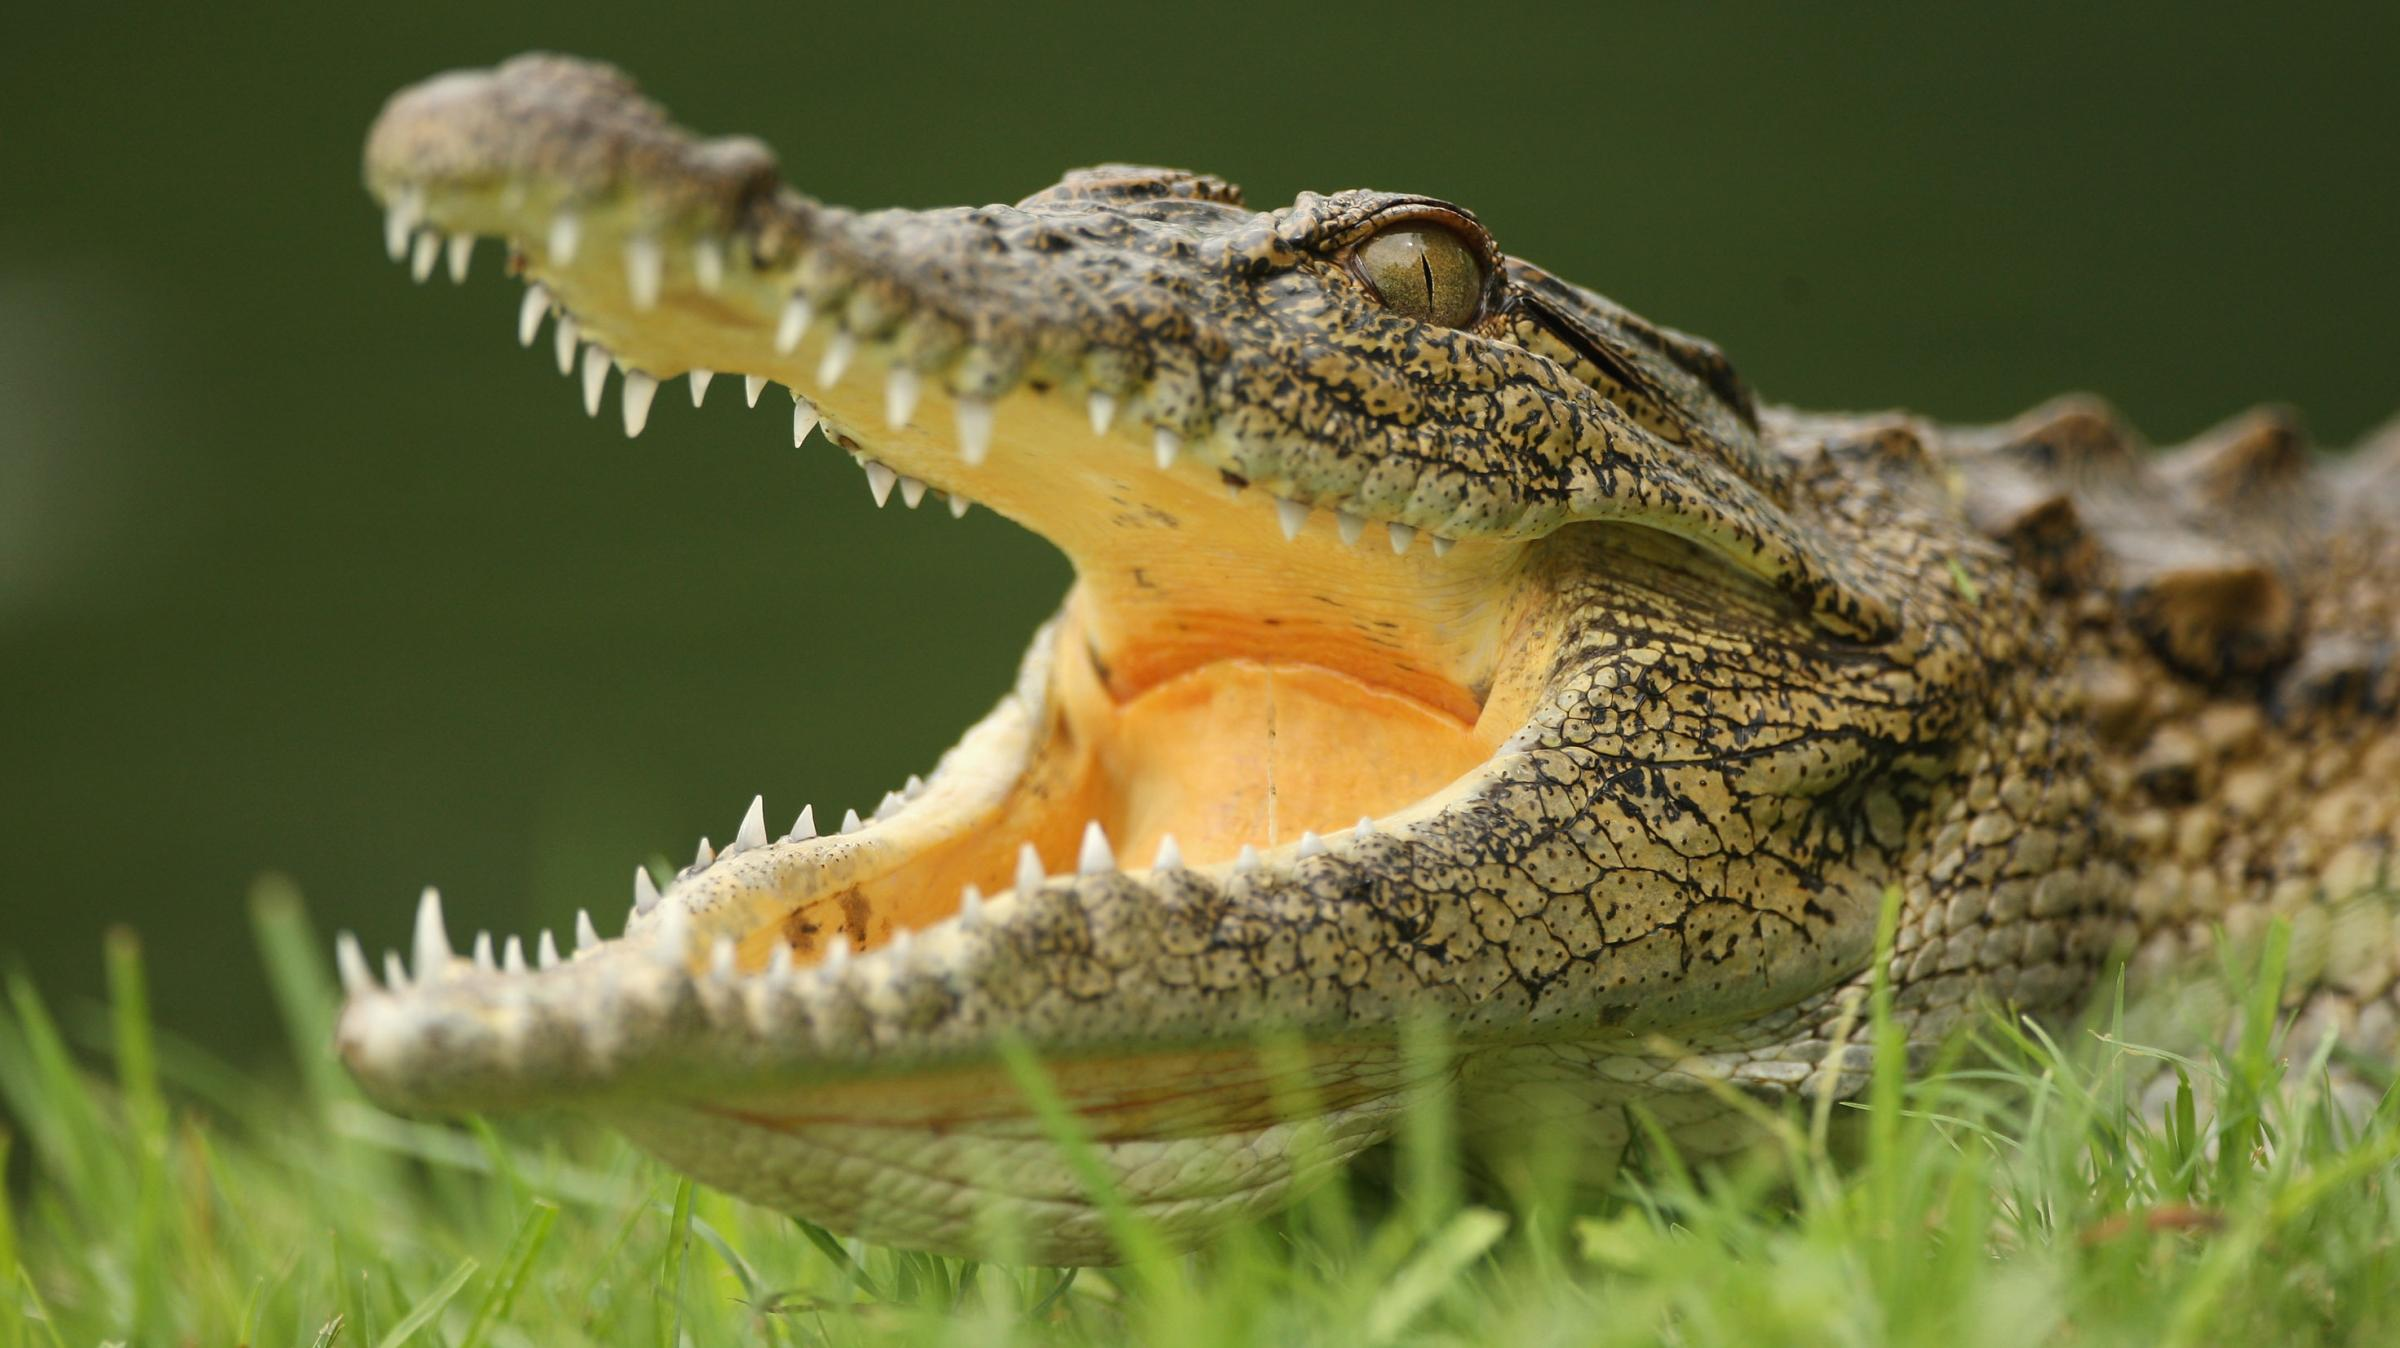 Yikes 15 000 Crocodiles Escape Farm In South Africa Area